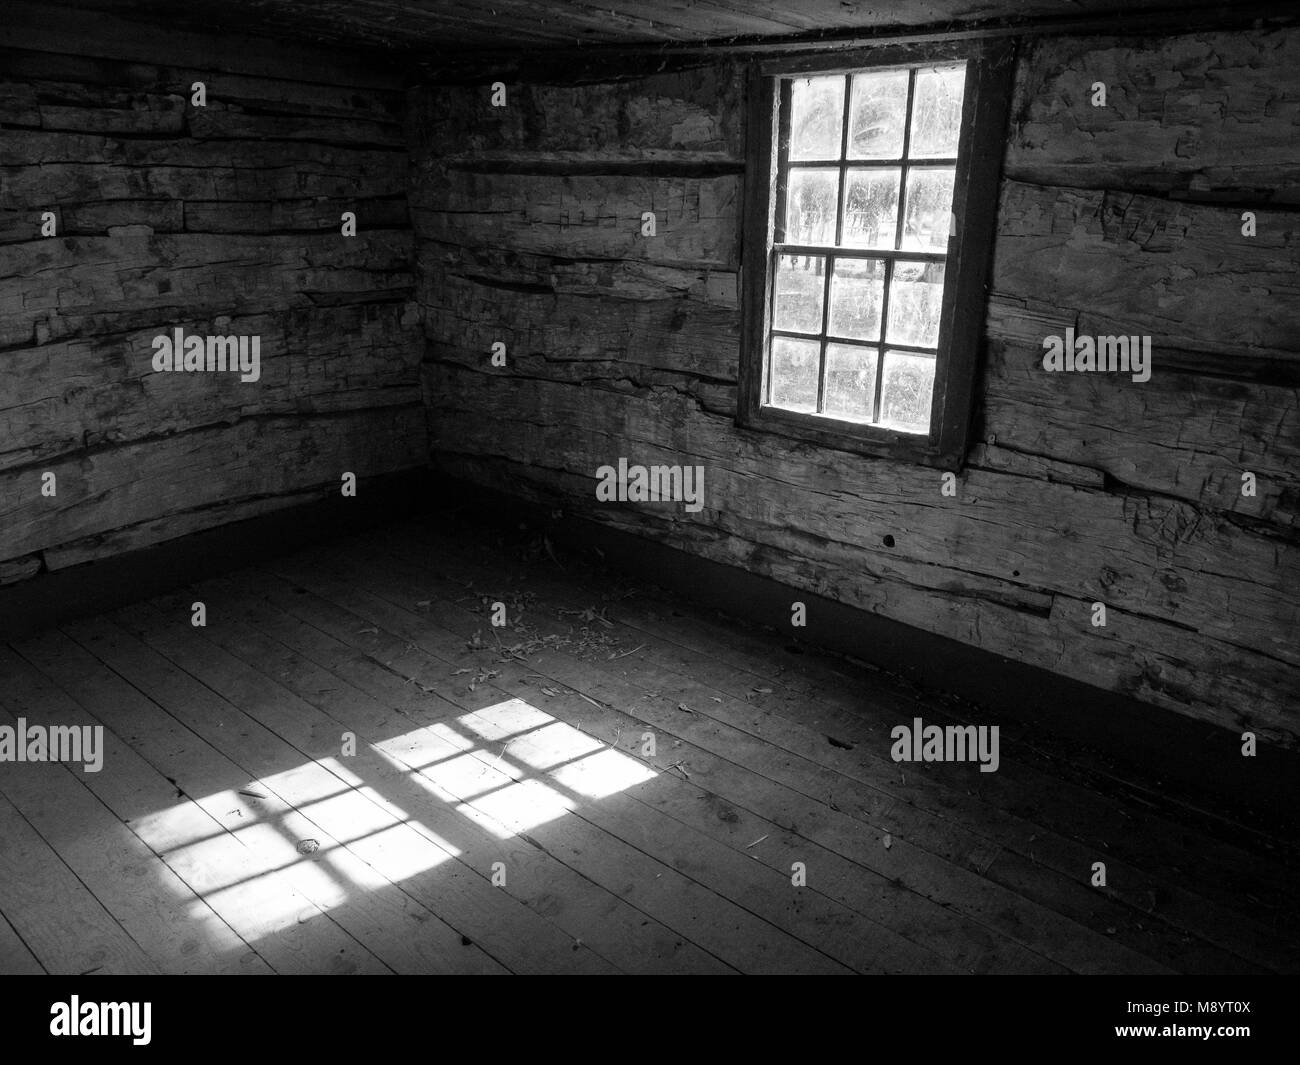 Old Log Cabin Interior, Black and White, Sunlight Through Window - Stock Image